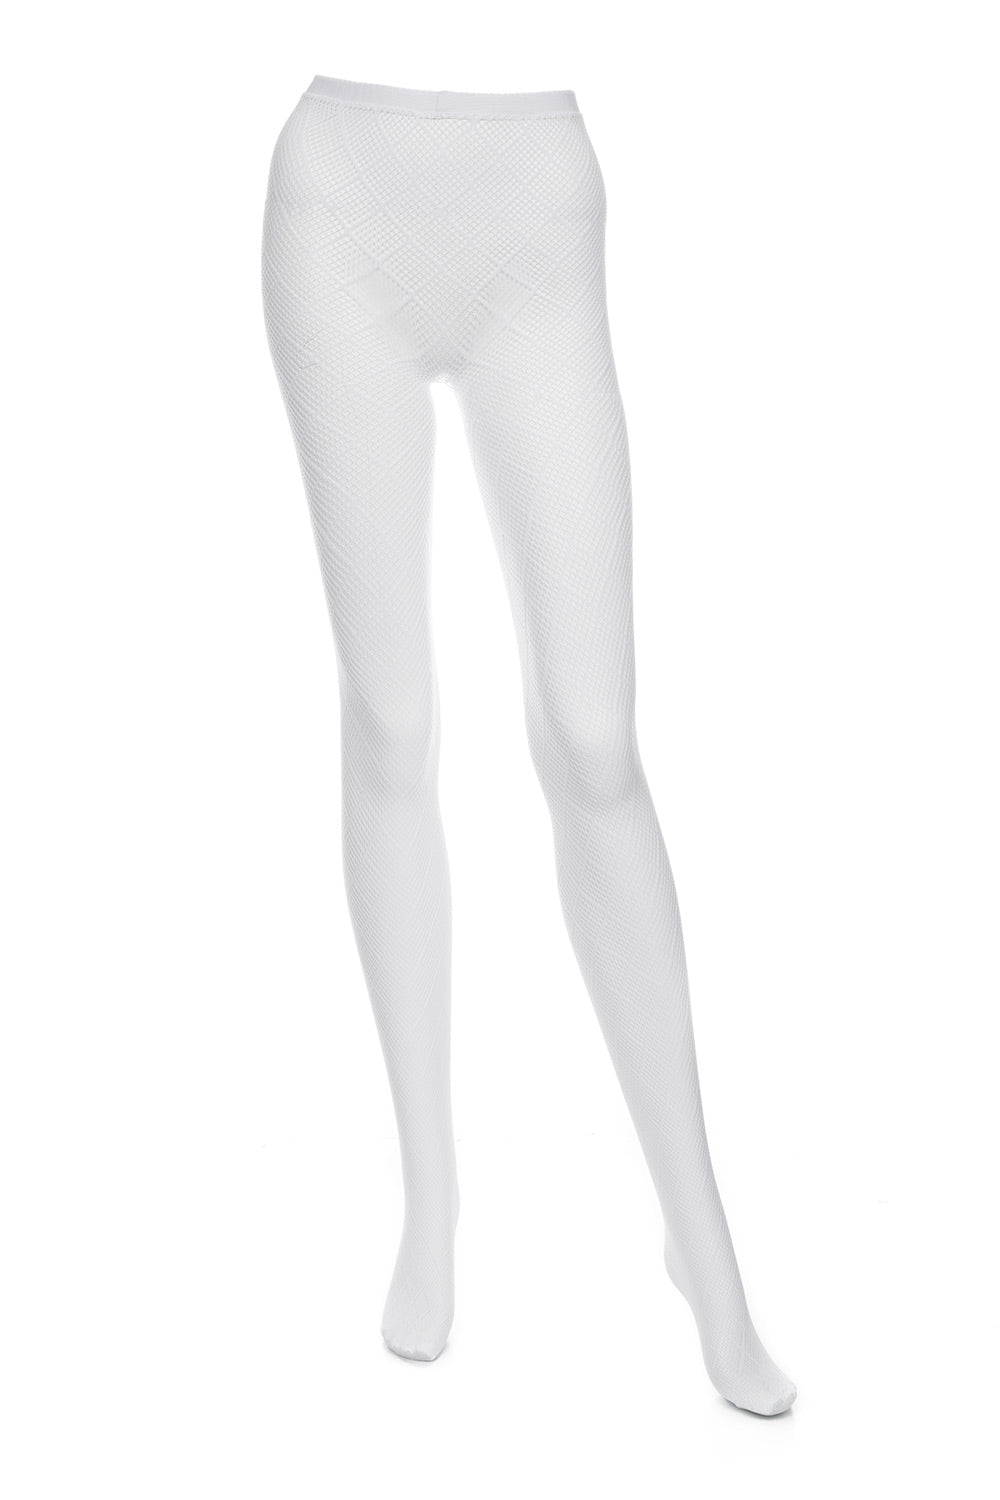 Type 1 White Diamond Tights